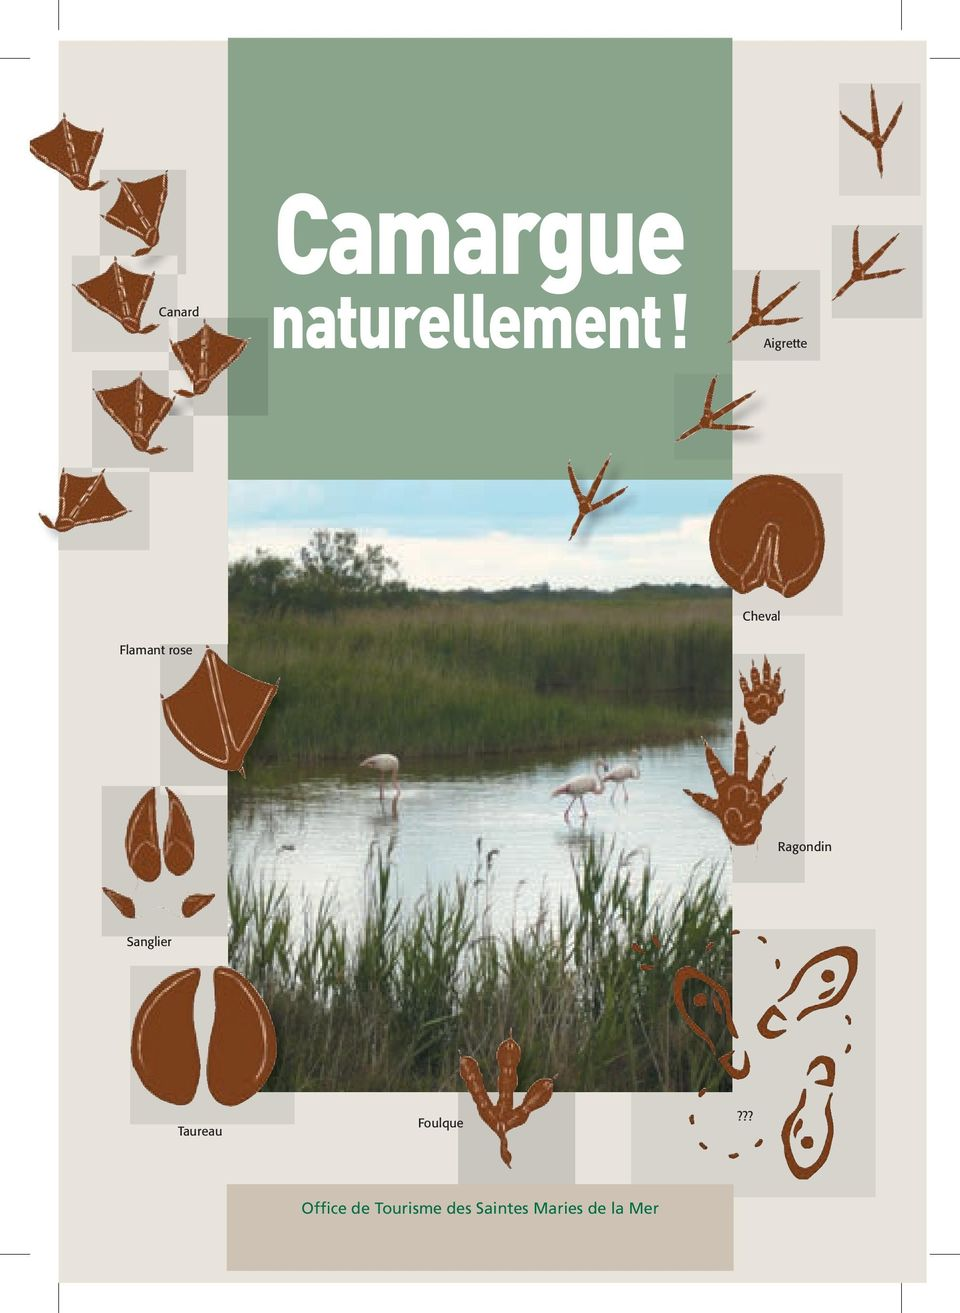 Camargue naturellement office de tourisme des saintes - Office du tourisme saintes maries de la mer ...